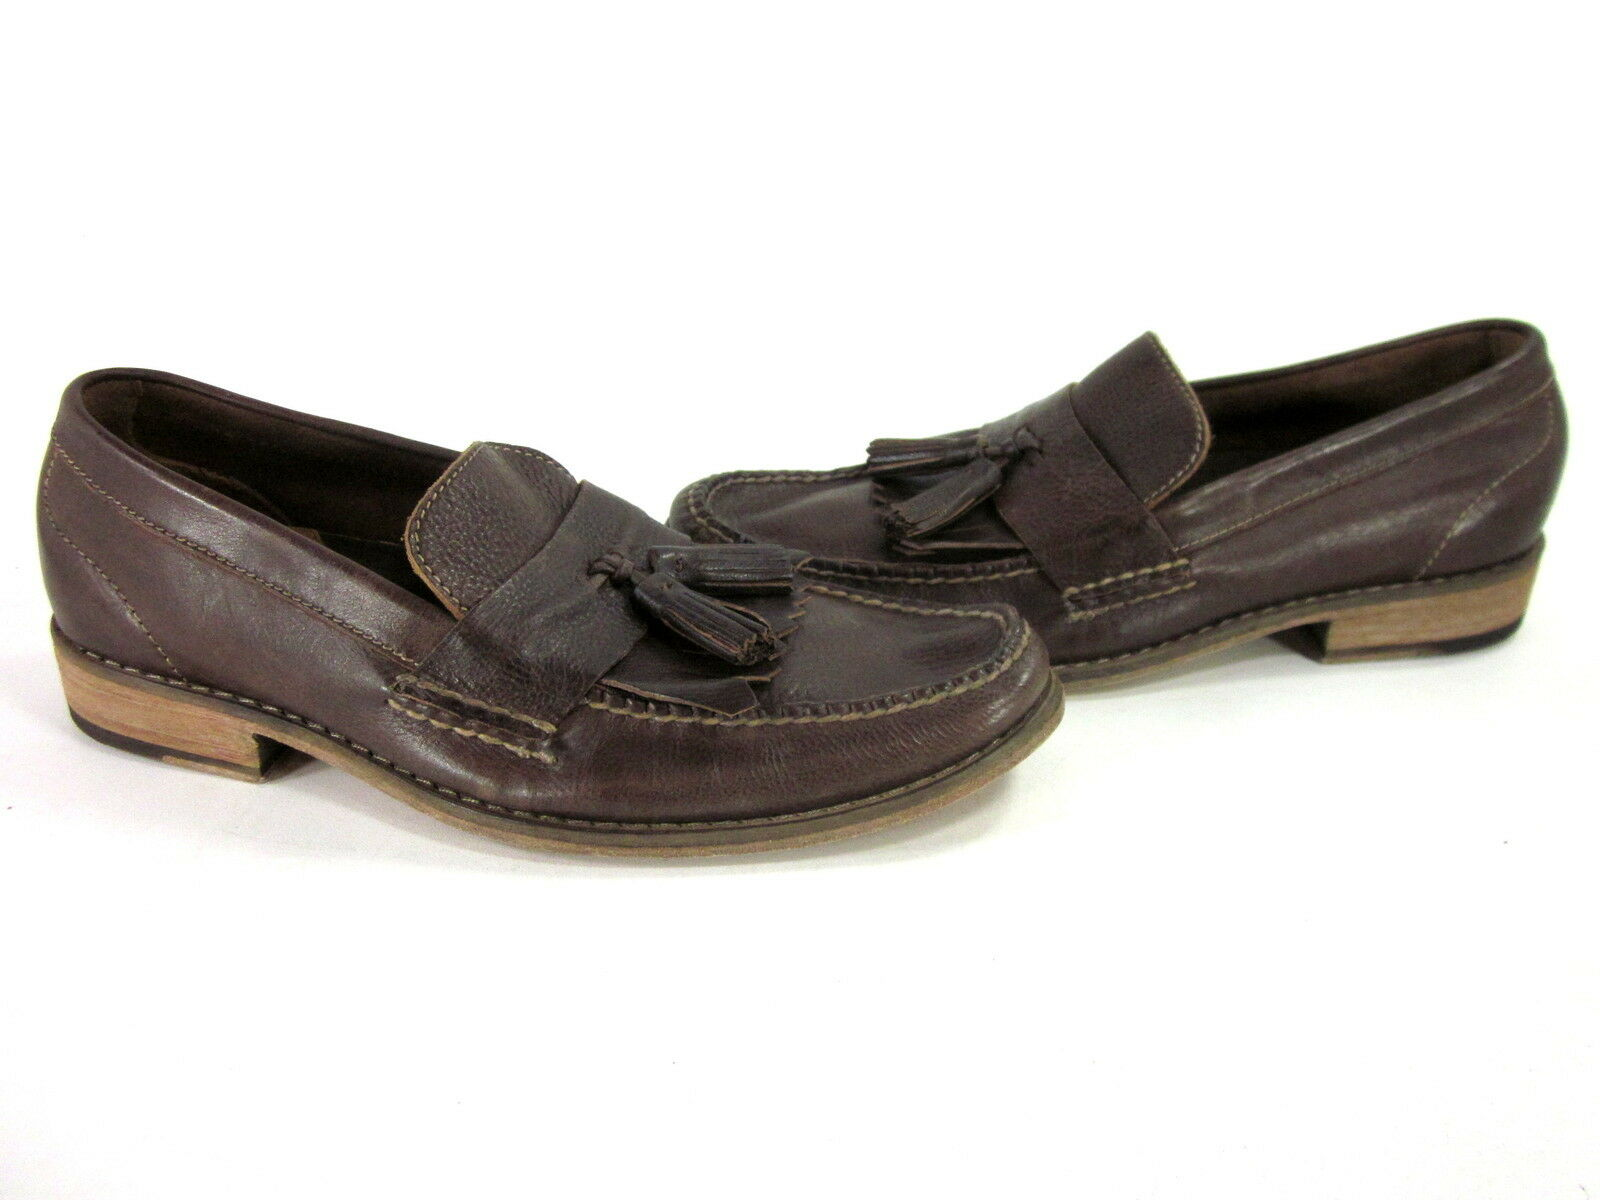 COLE HAAN AIR DELANCY SHAWL uomo COMFORT LOAFERS LOAFERS LOAFERS LEATHER Marronee US SZ 8.5 MEDIUM b71848